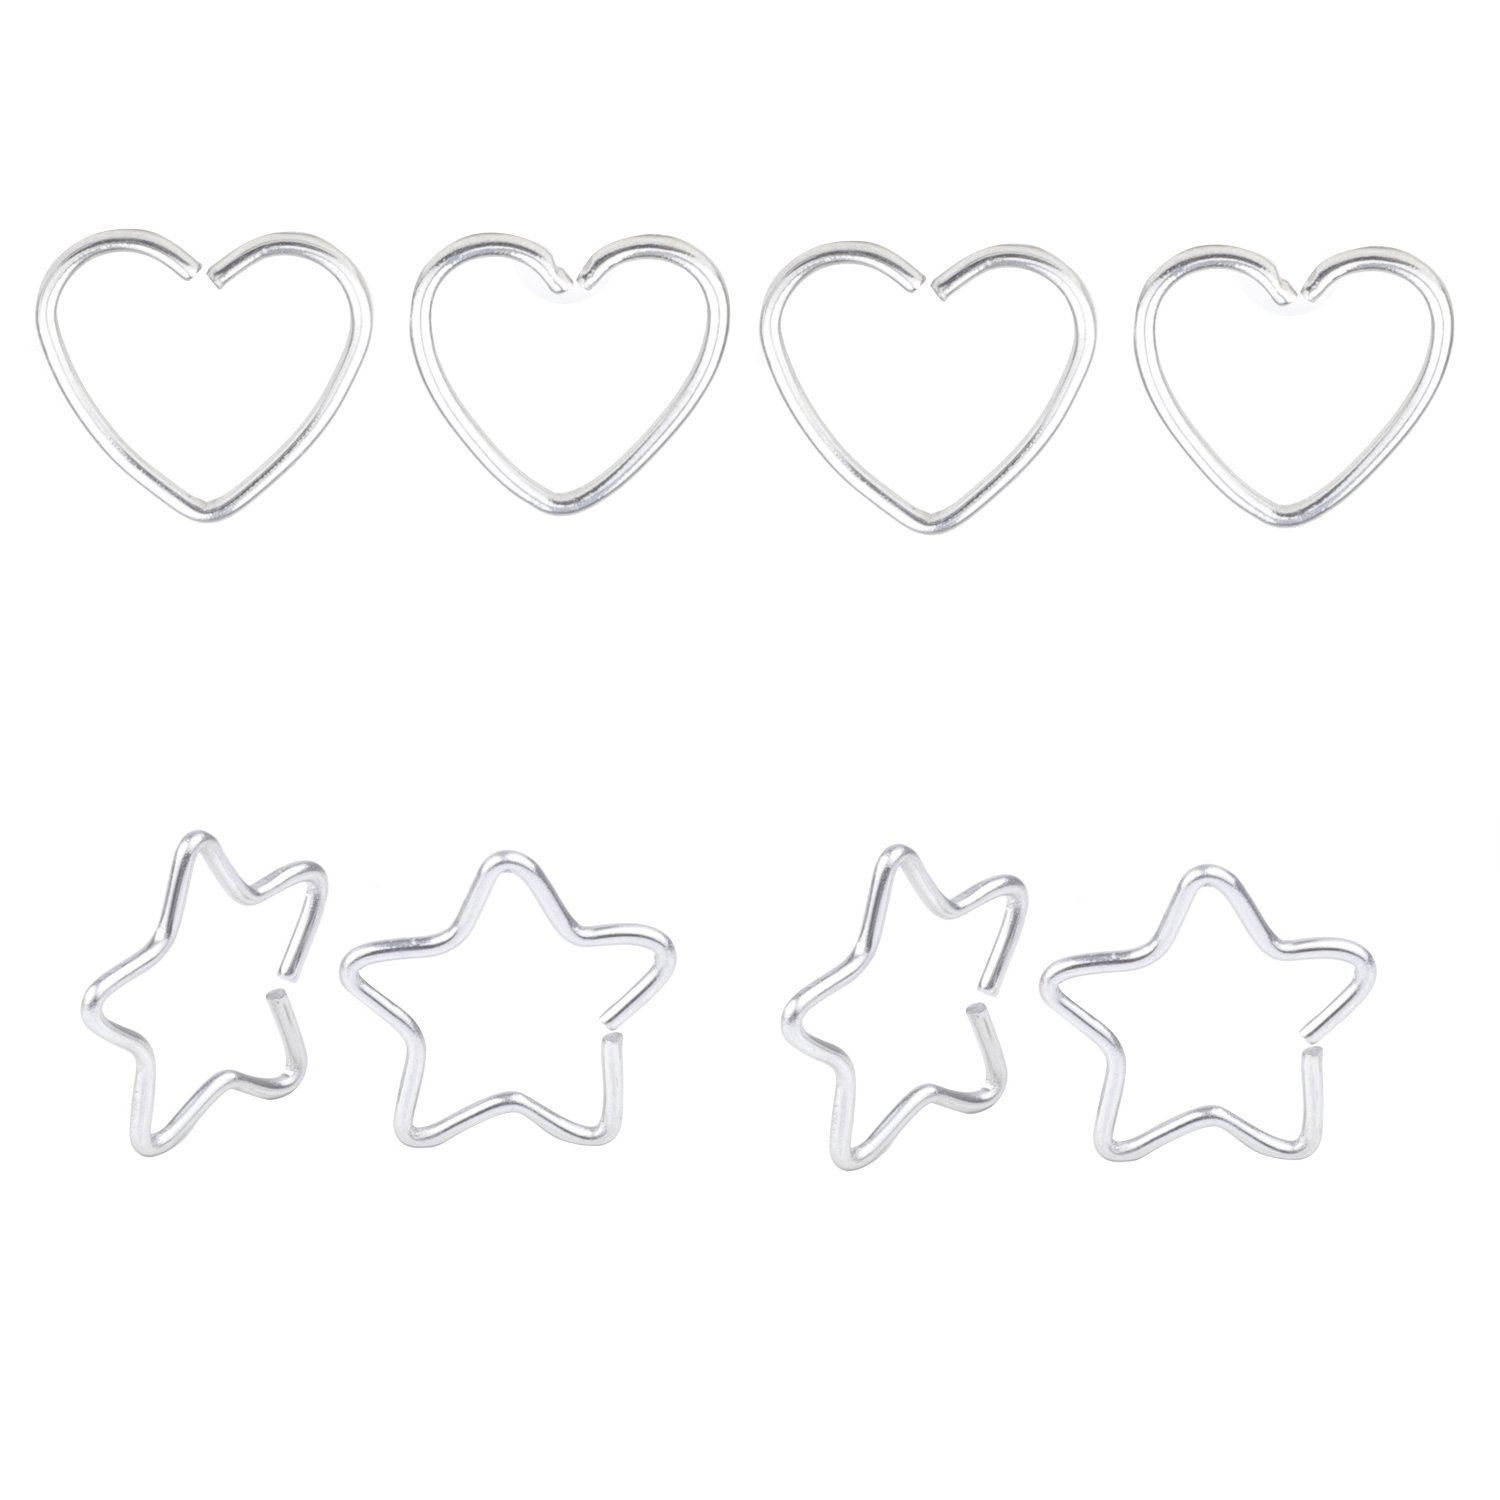 8pcs 20G Stainless Steel Tiny Niobium HeartStar Captive Ring Daith Ear Cartilage Earring Rook Tragus Helix Piercing Nose Ring Nose Hoop